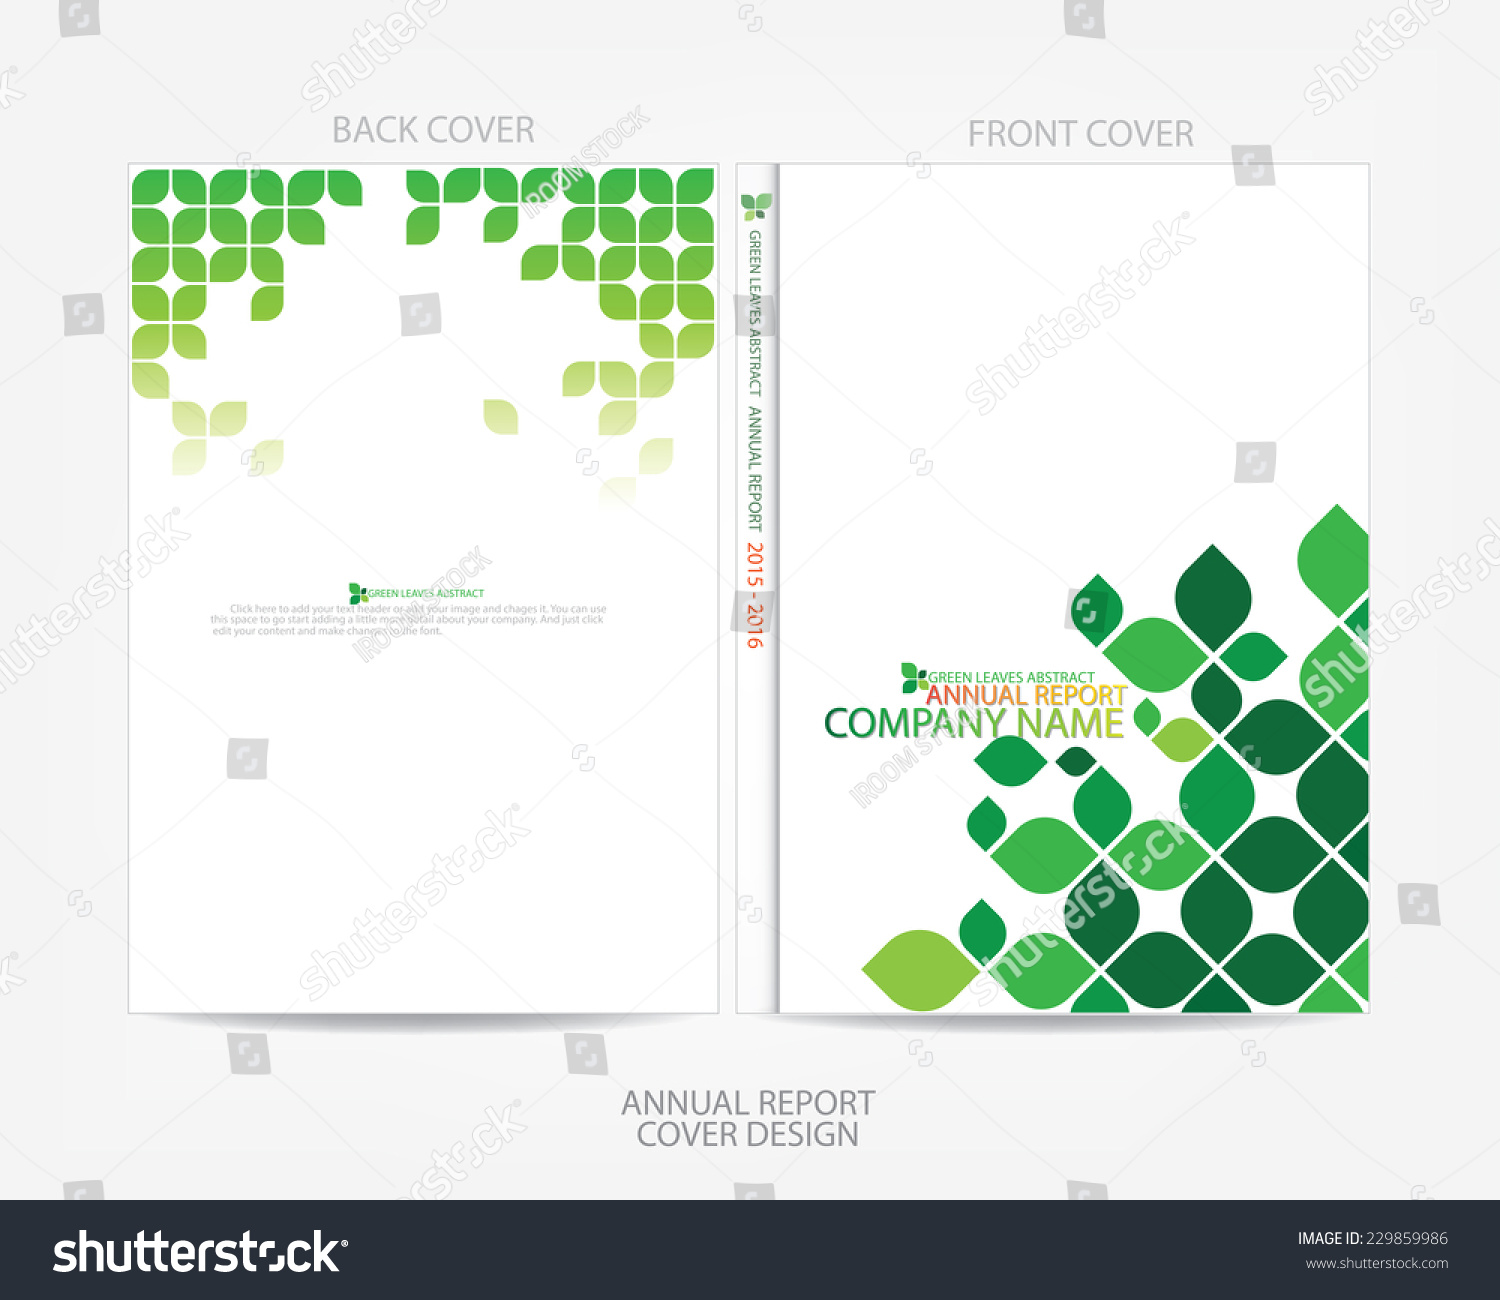 green leaves abstract annual report cover stock vector 229859986 green leaves abstract annual report cover design